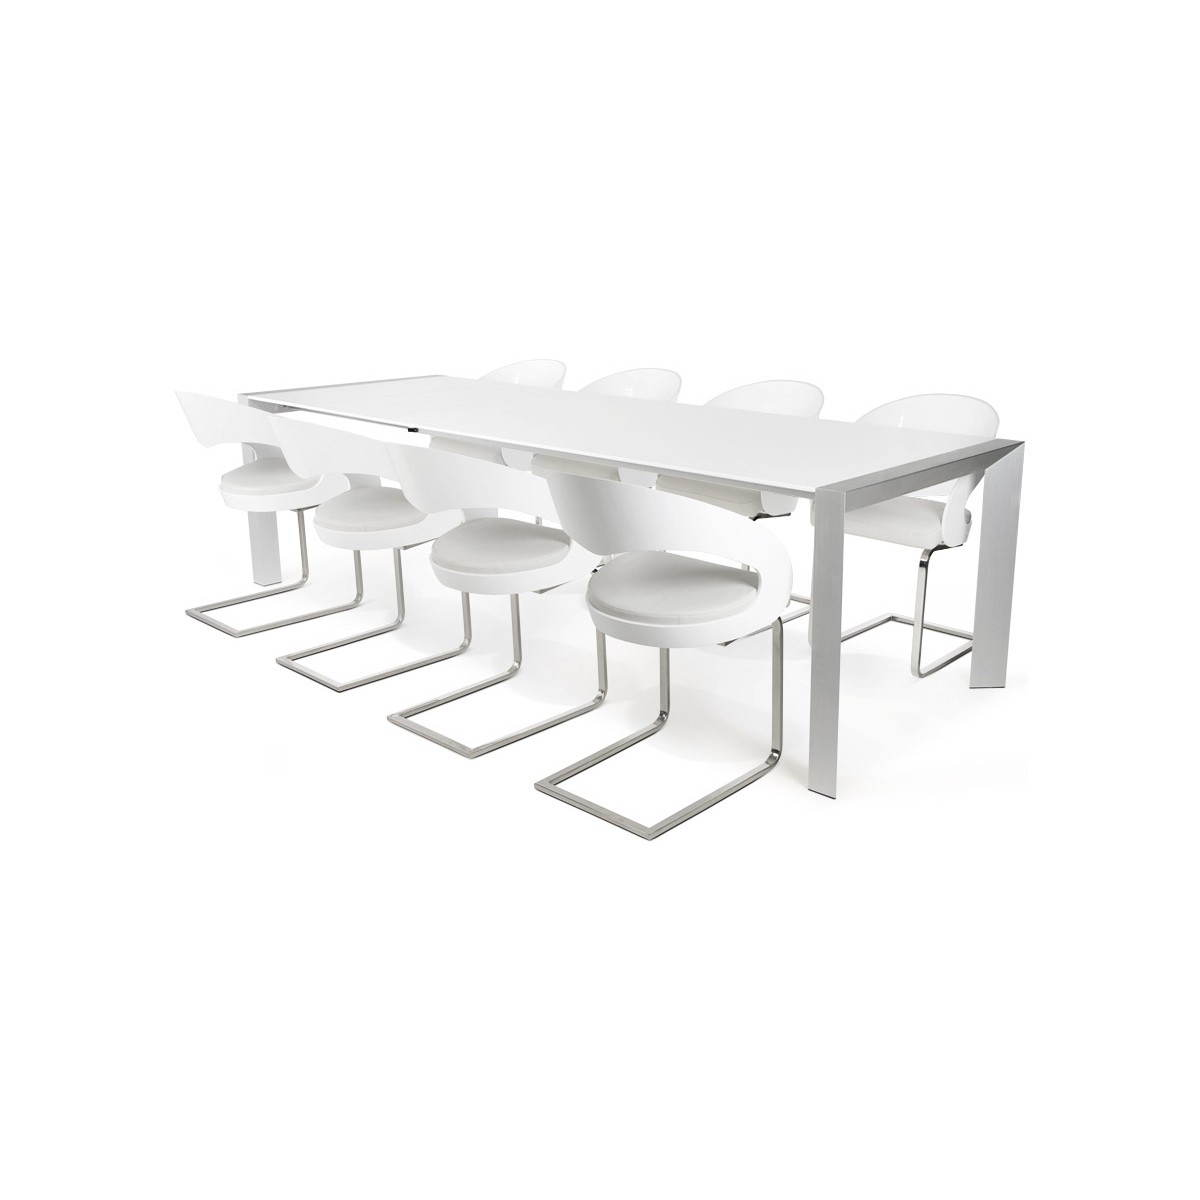 Table design rectangulaire avec rallonge fiona en bois laqu et aluminium bro - Table bois design contemporain ...